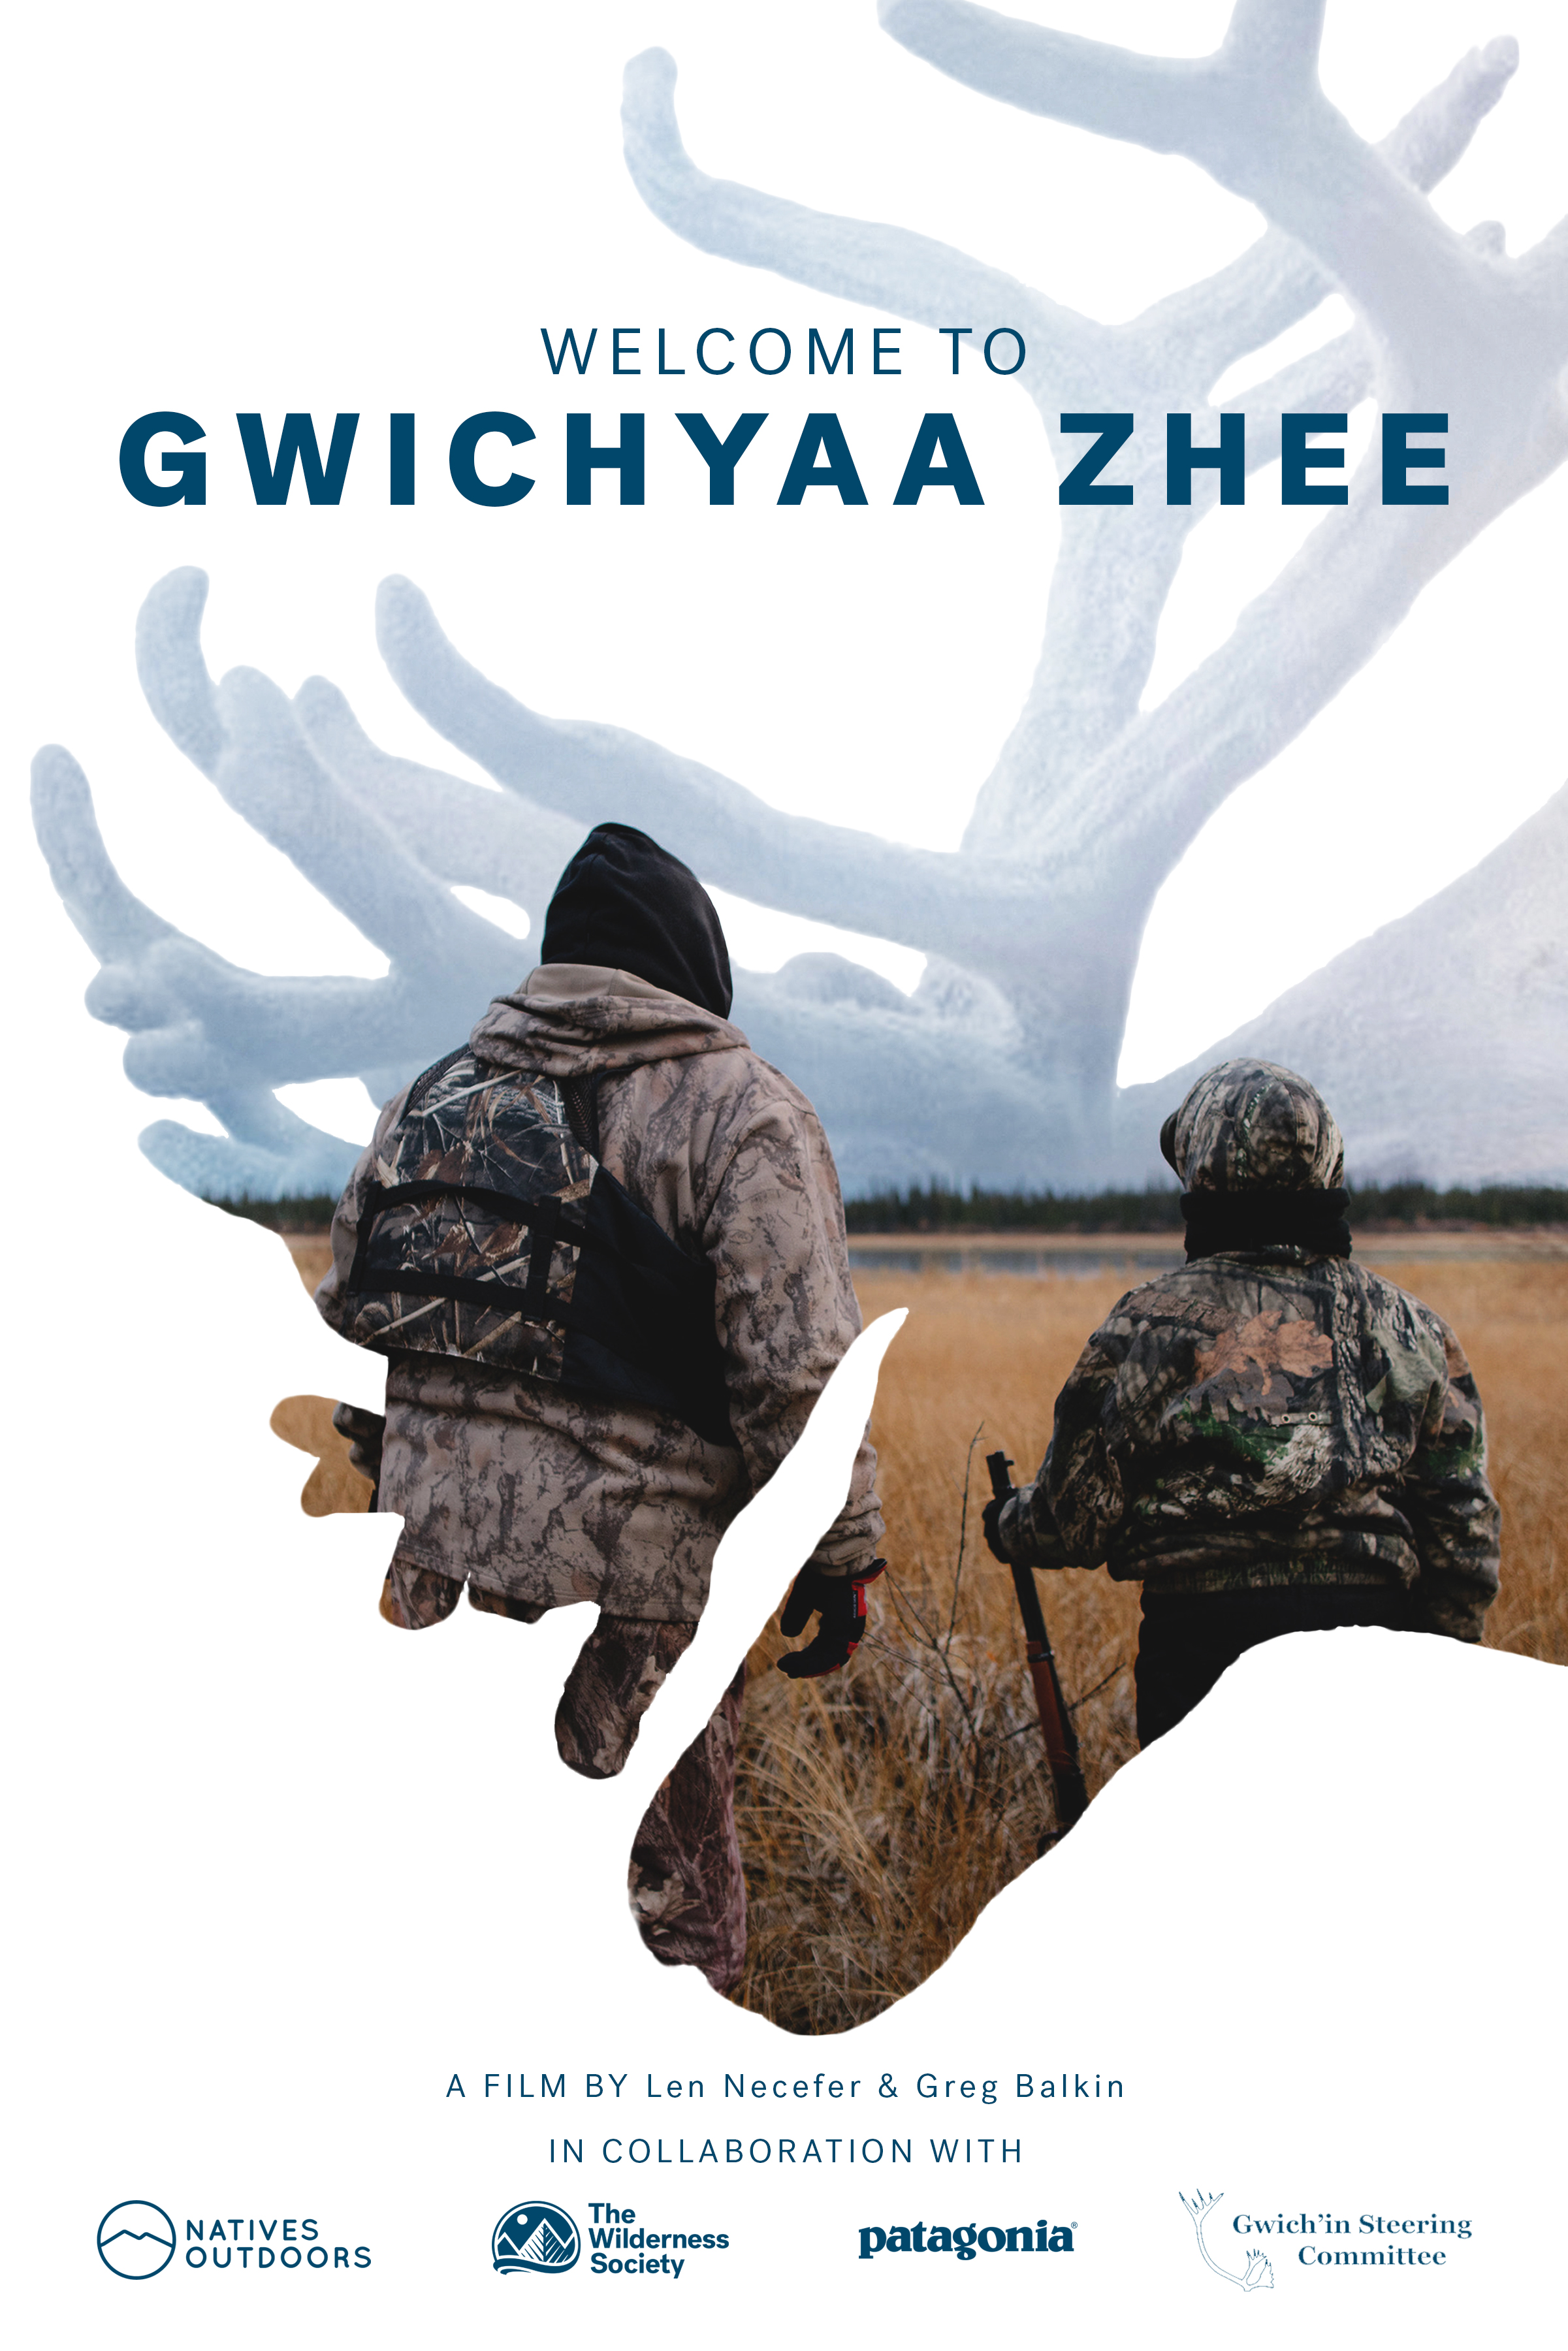 Content — Welcome to Gwichyaa Zhee